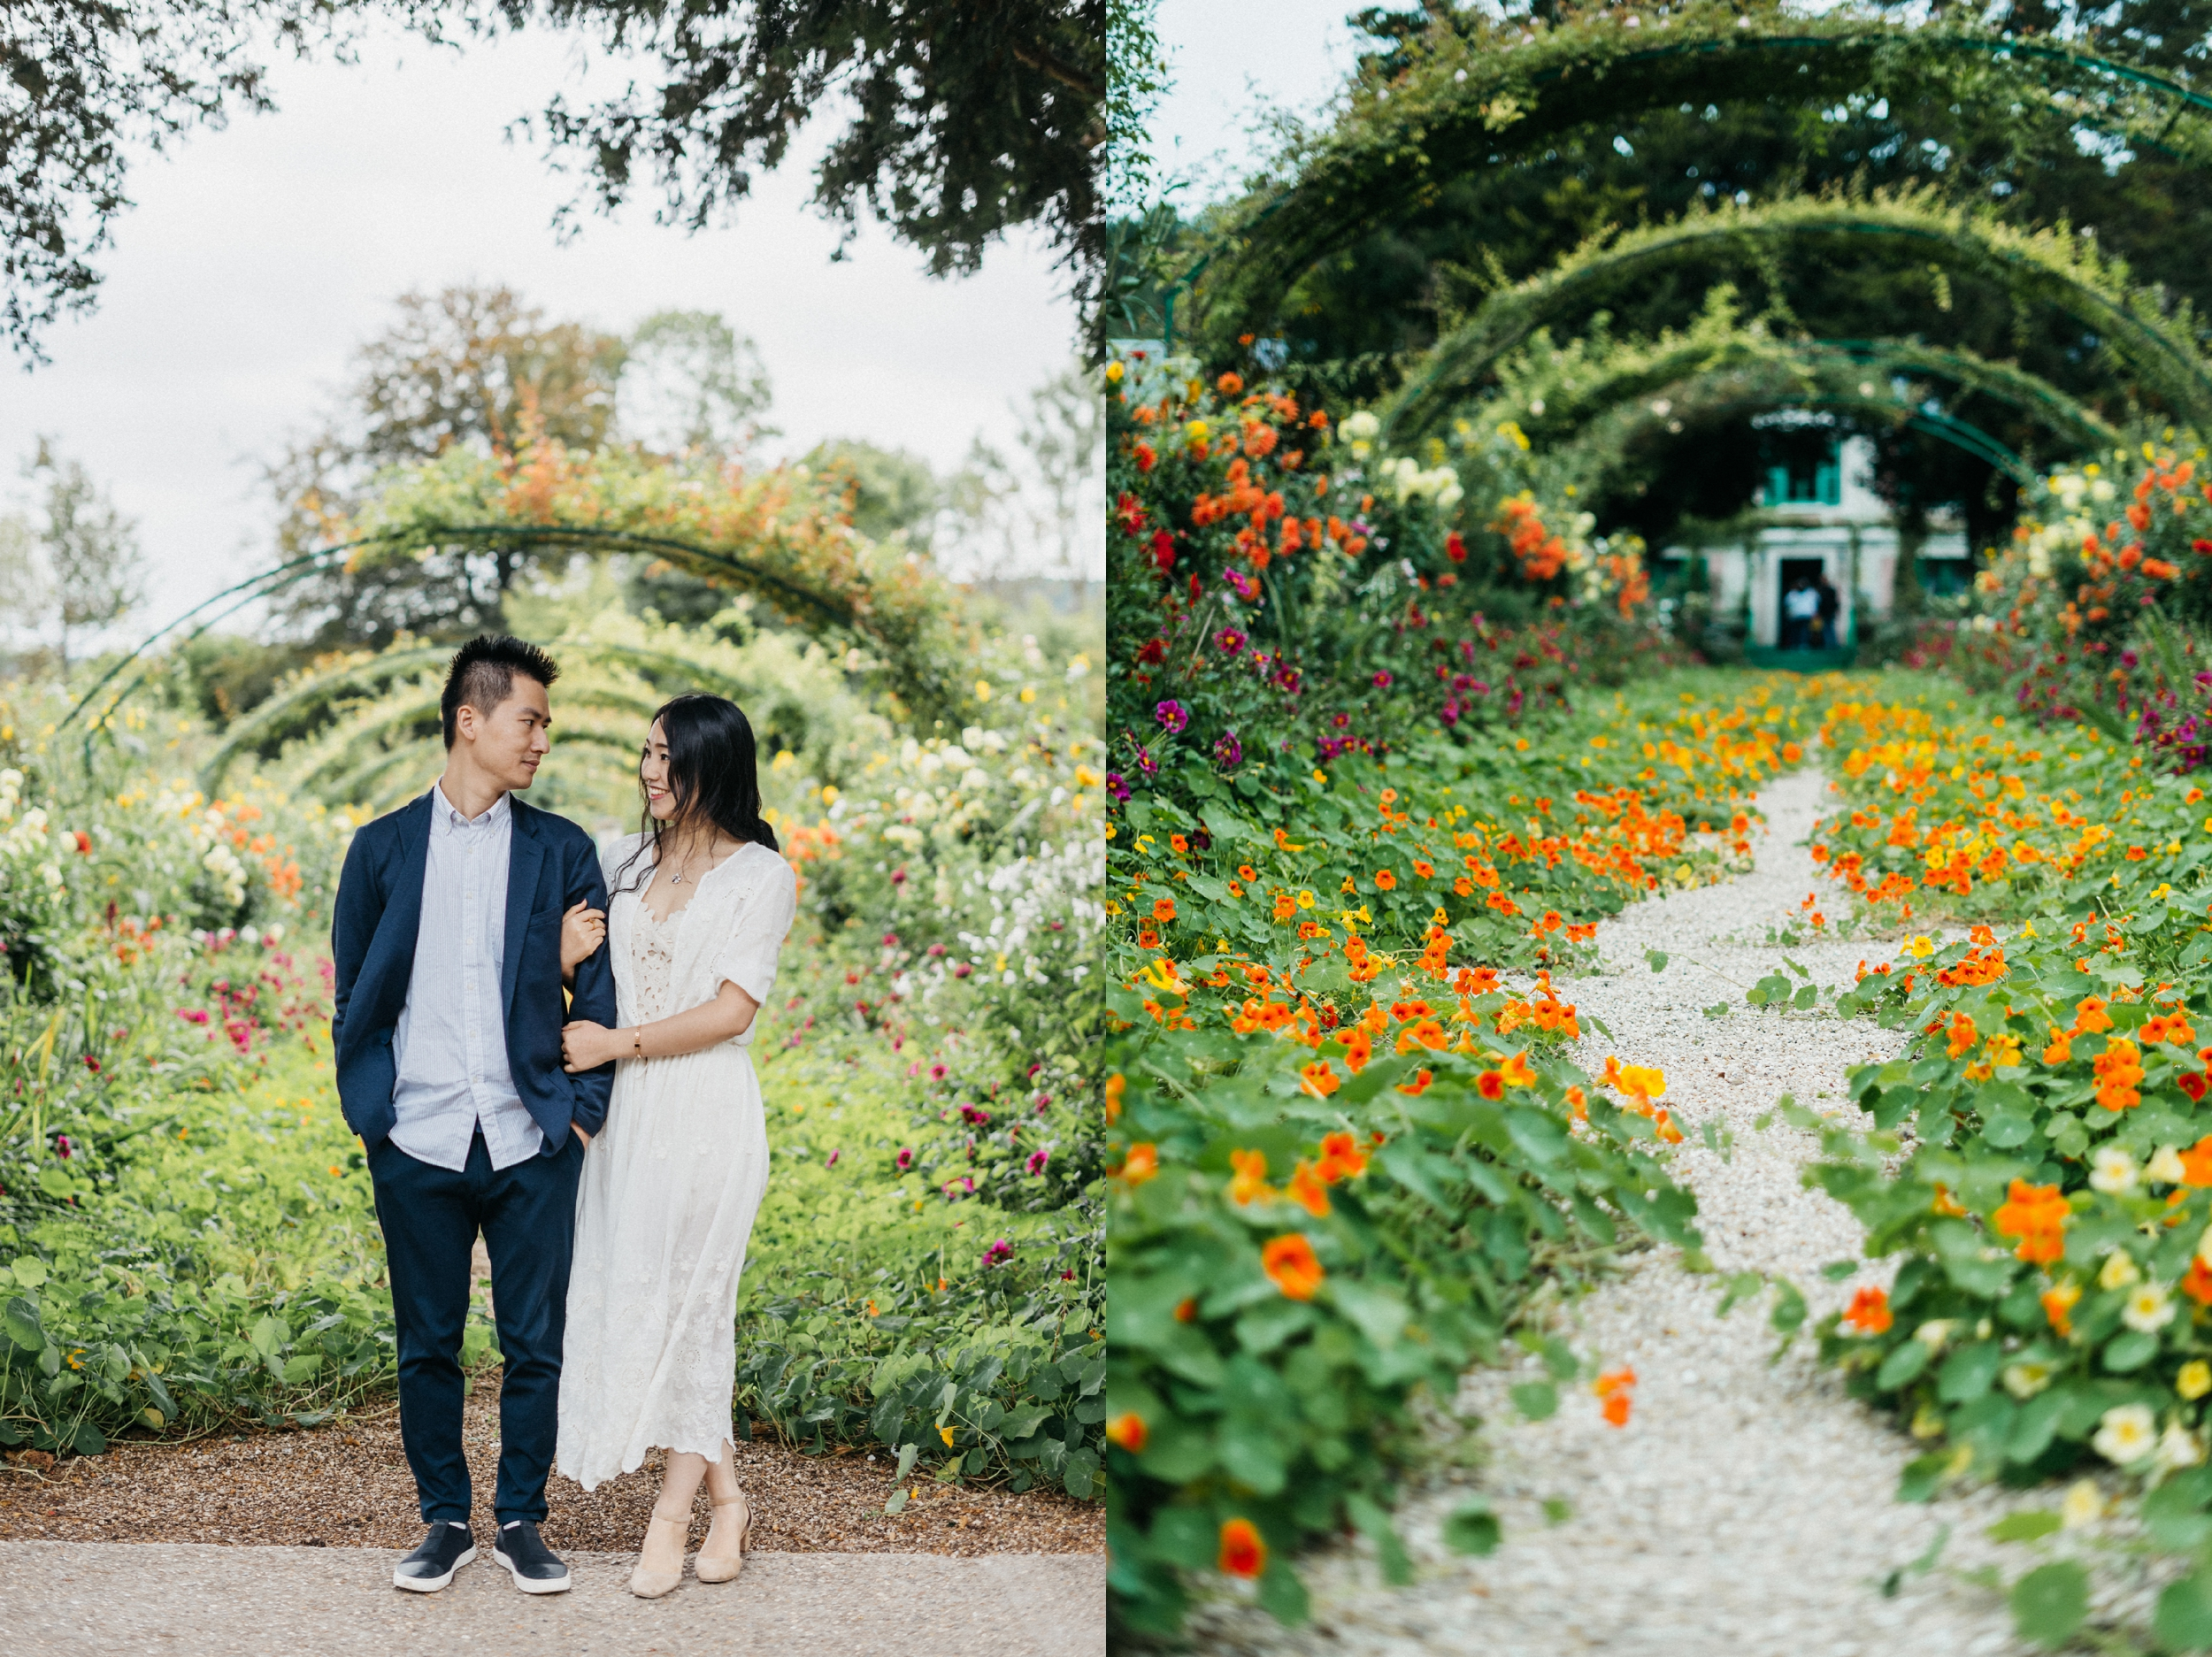 desiree-gardner-photography-pairs-france-monet-garden-monets-couple-wedding-engagement-giverny-30-a-30a-florida_0029.jpg